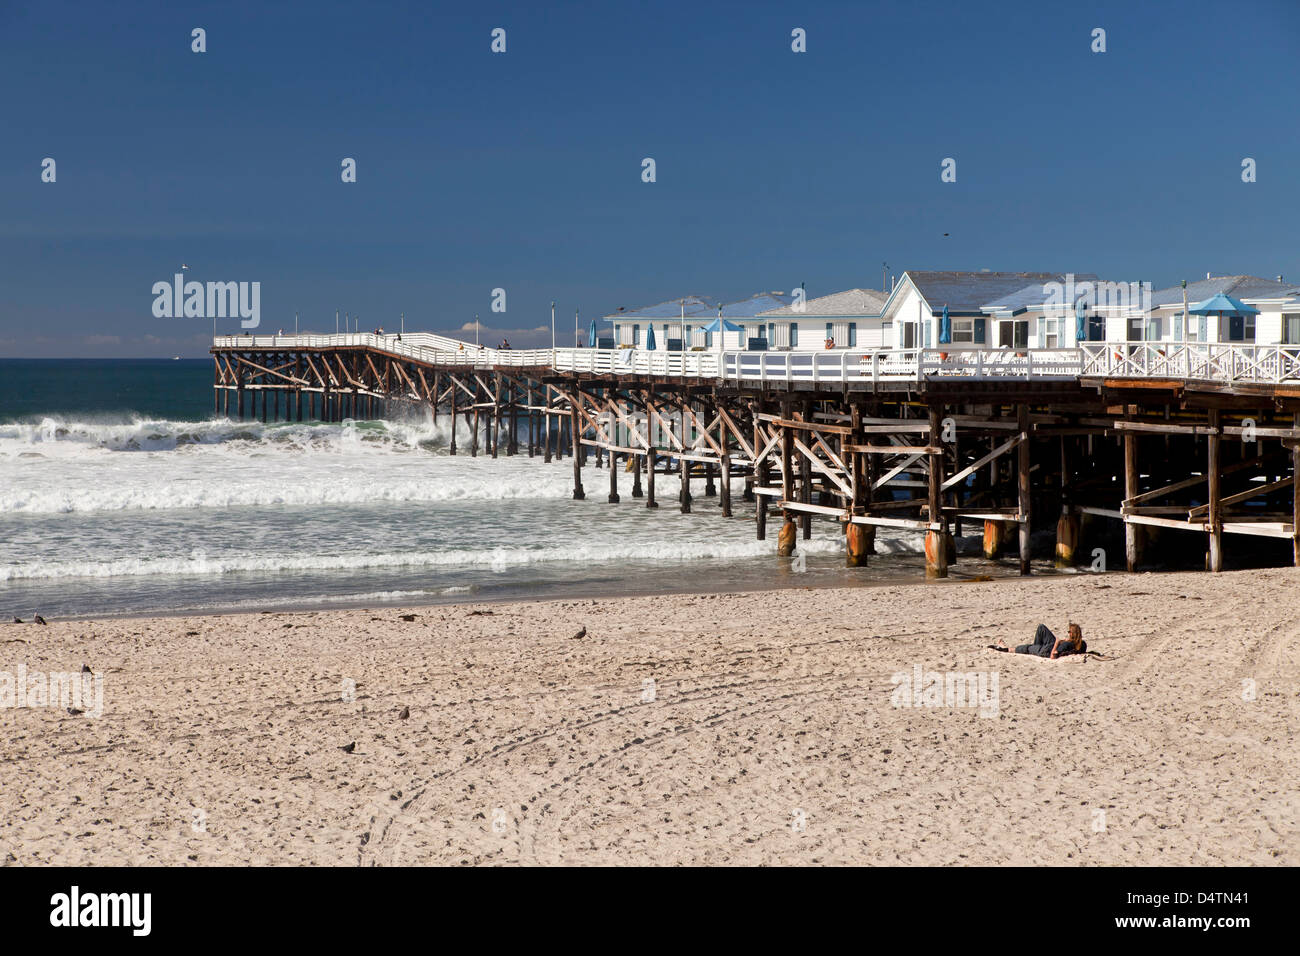 Pacific Beach and the Crystal Pier Hotel on Stilts over the ocean in San Diego, California, United States of America, - Stock Image